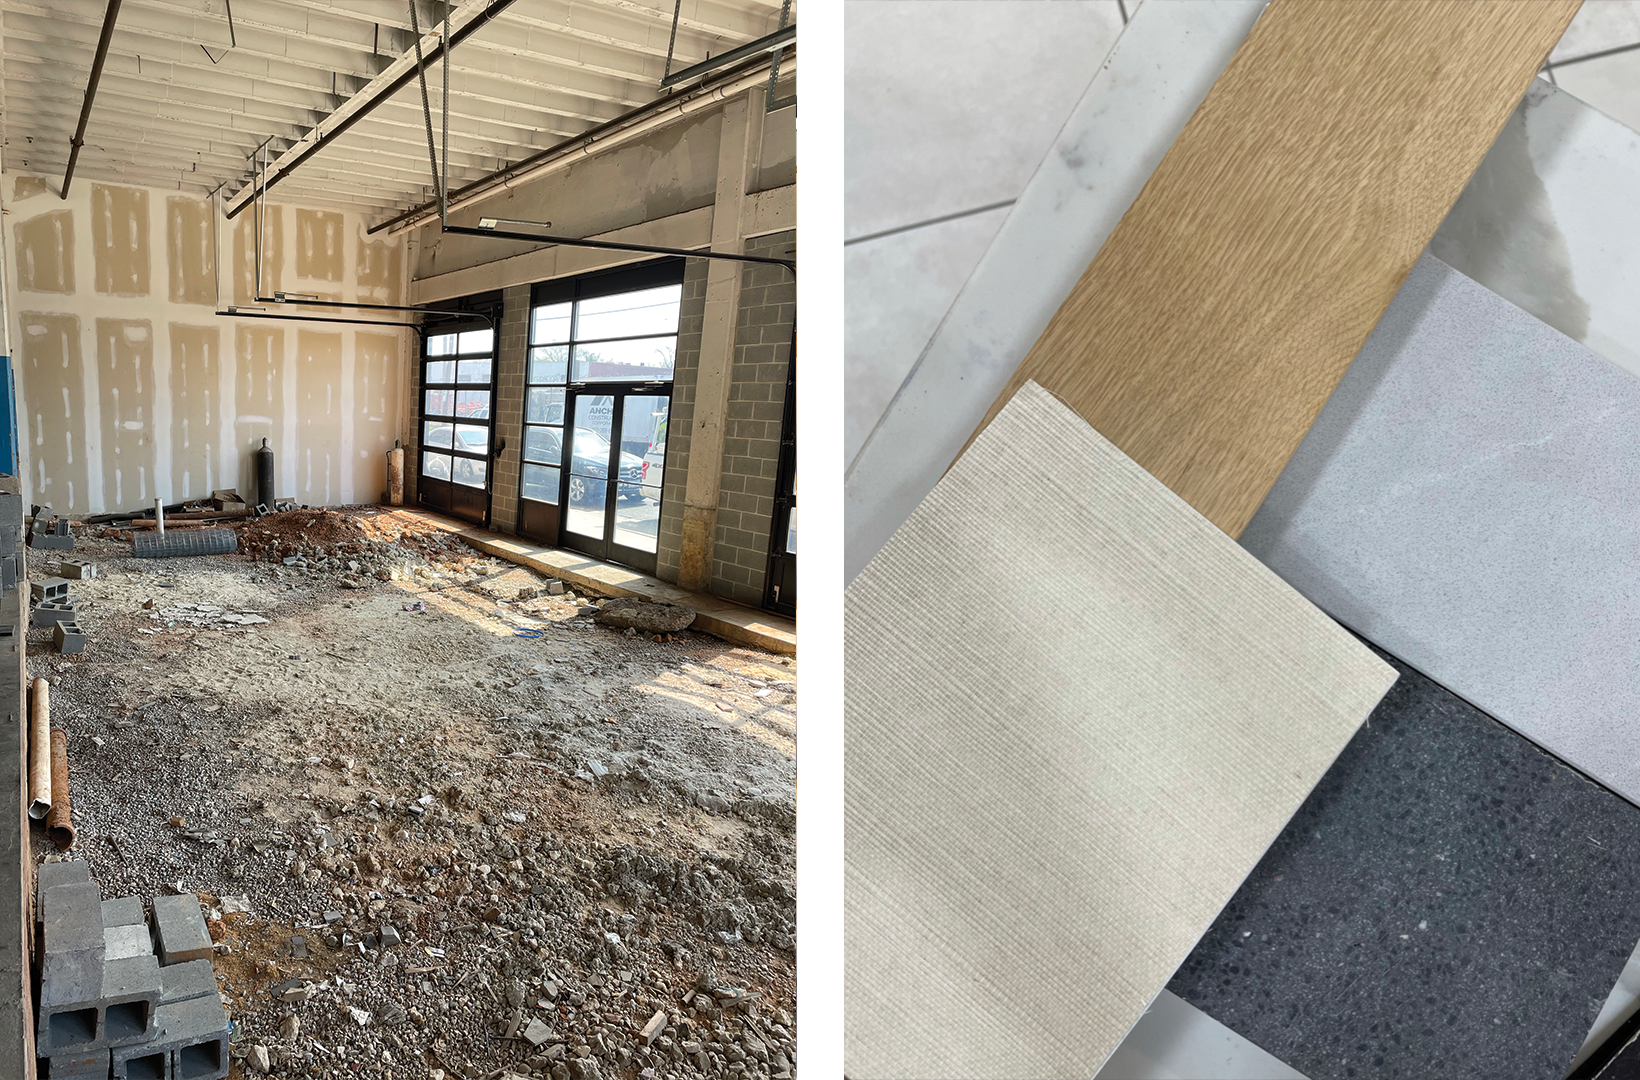 Left: The Appointed District Shop space under construction; Right: Materials sourced for the Appointed District Shop